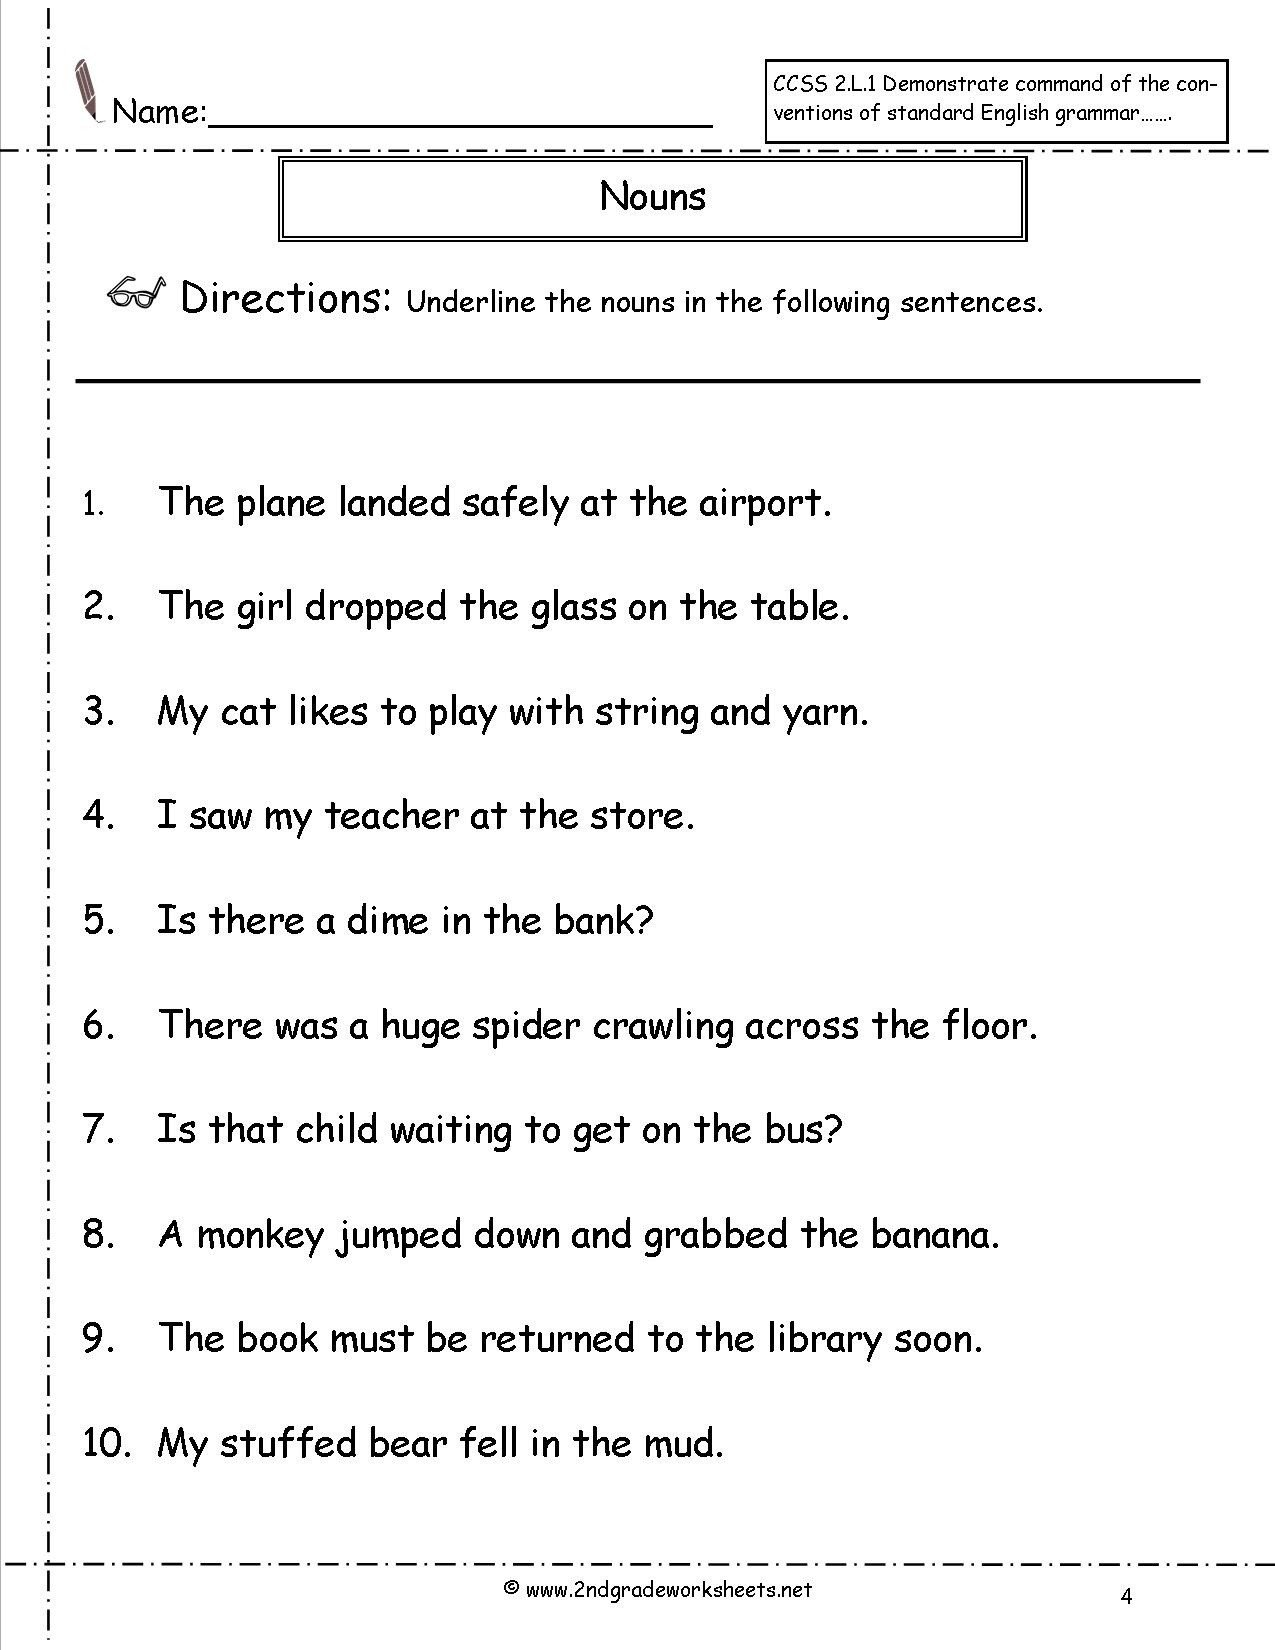 Pronoun Worksheets 2nd Grade Pronoun Worksheets 2nd